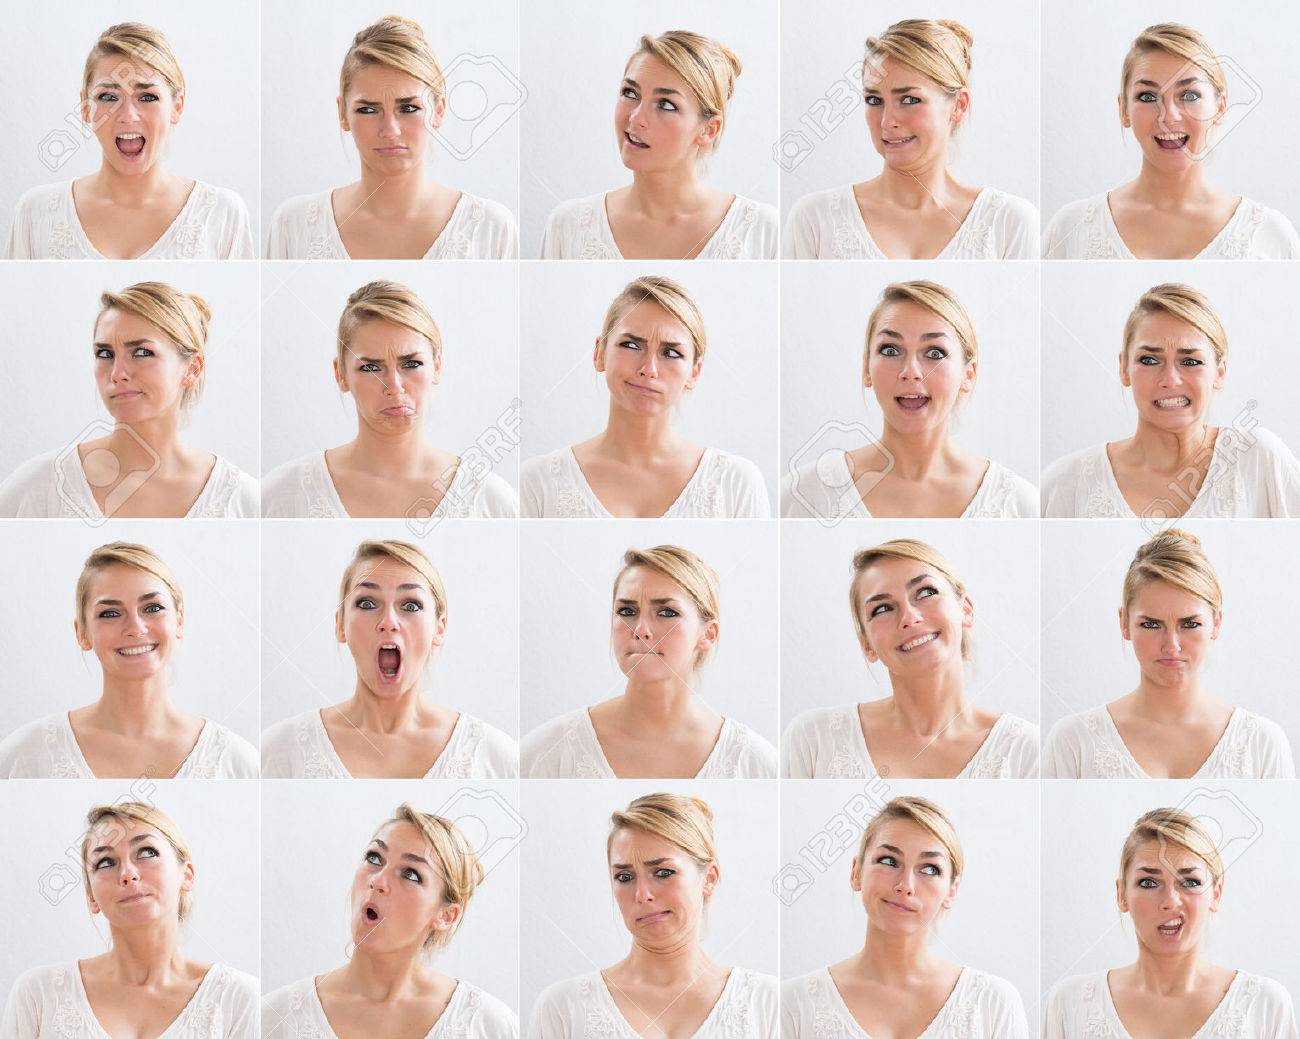 Collage of young woman with various expressions over white background - 48644732